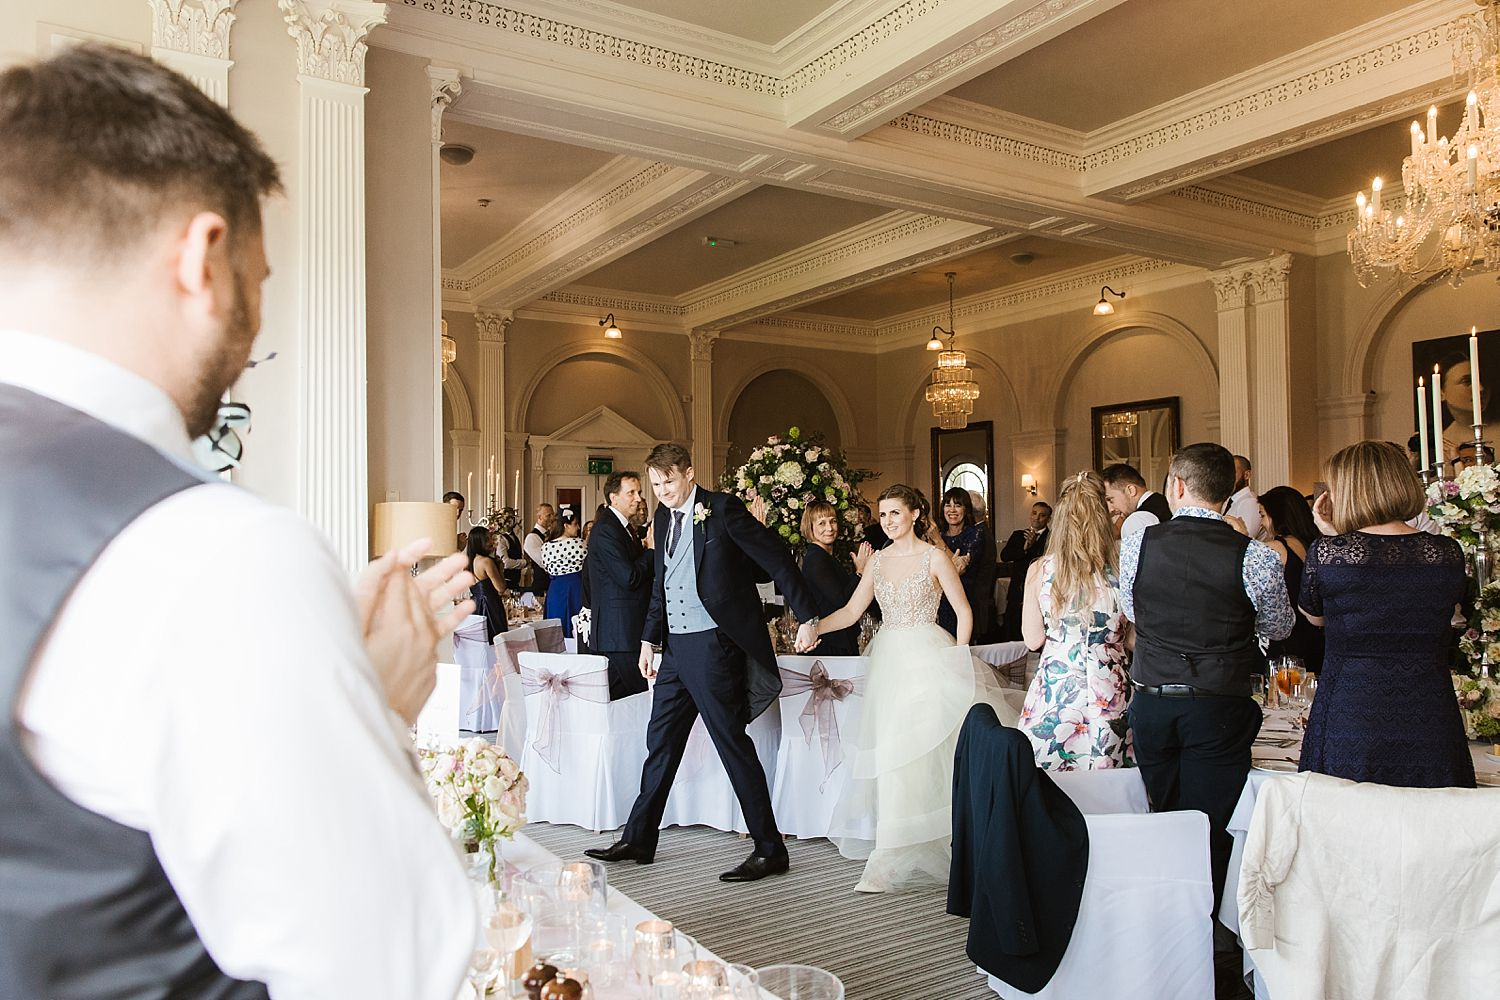 Bride and groom enter reception at Belsfield Hotel, holding hands.